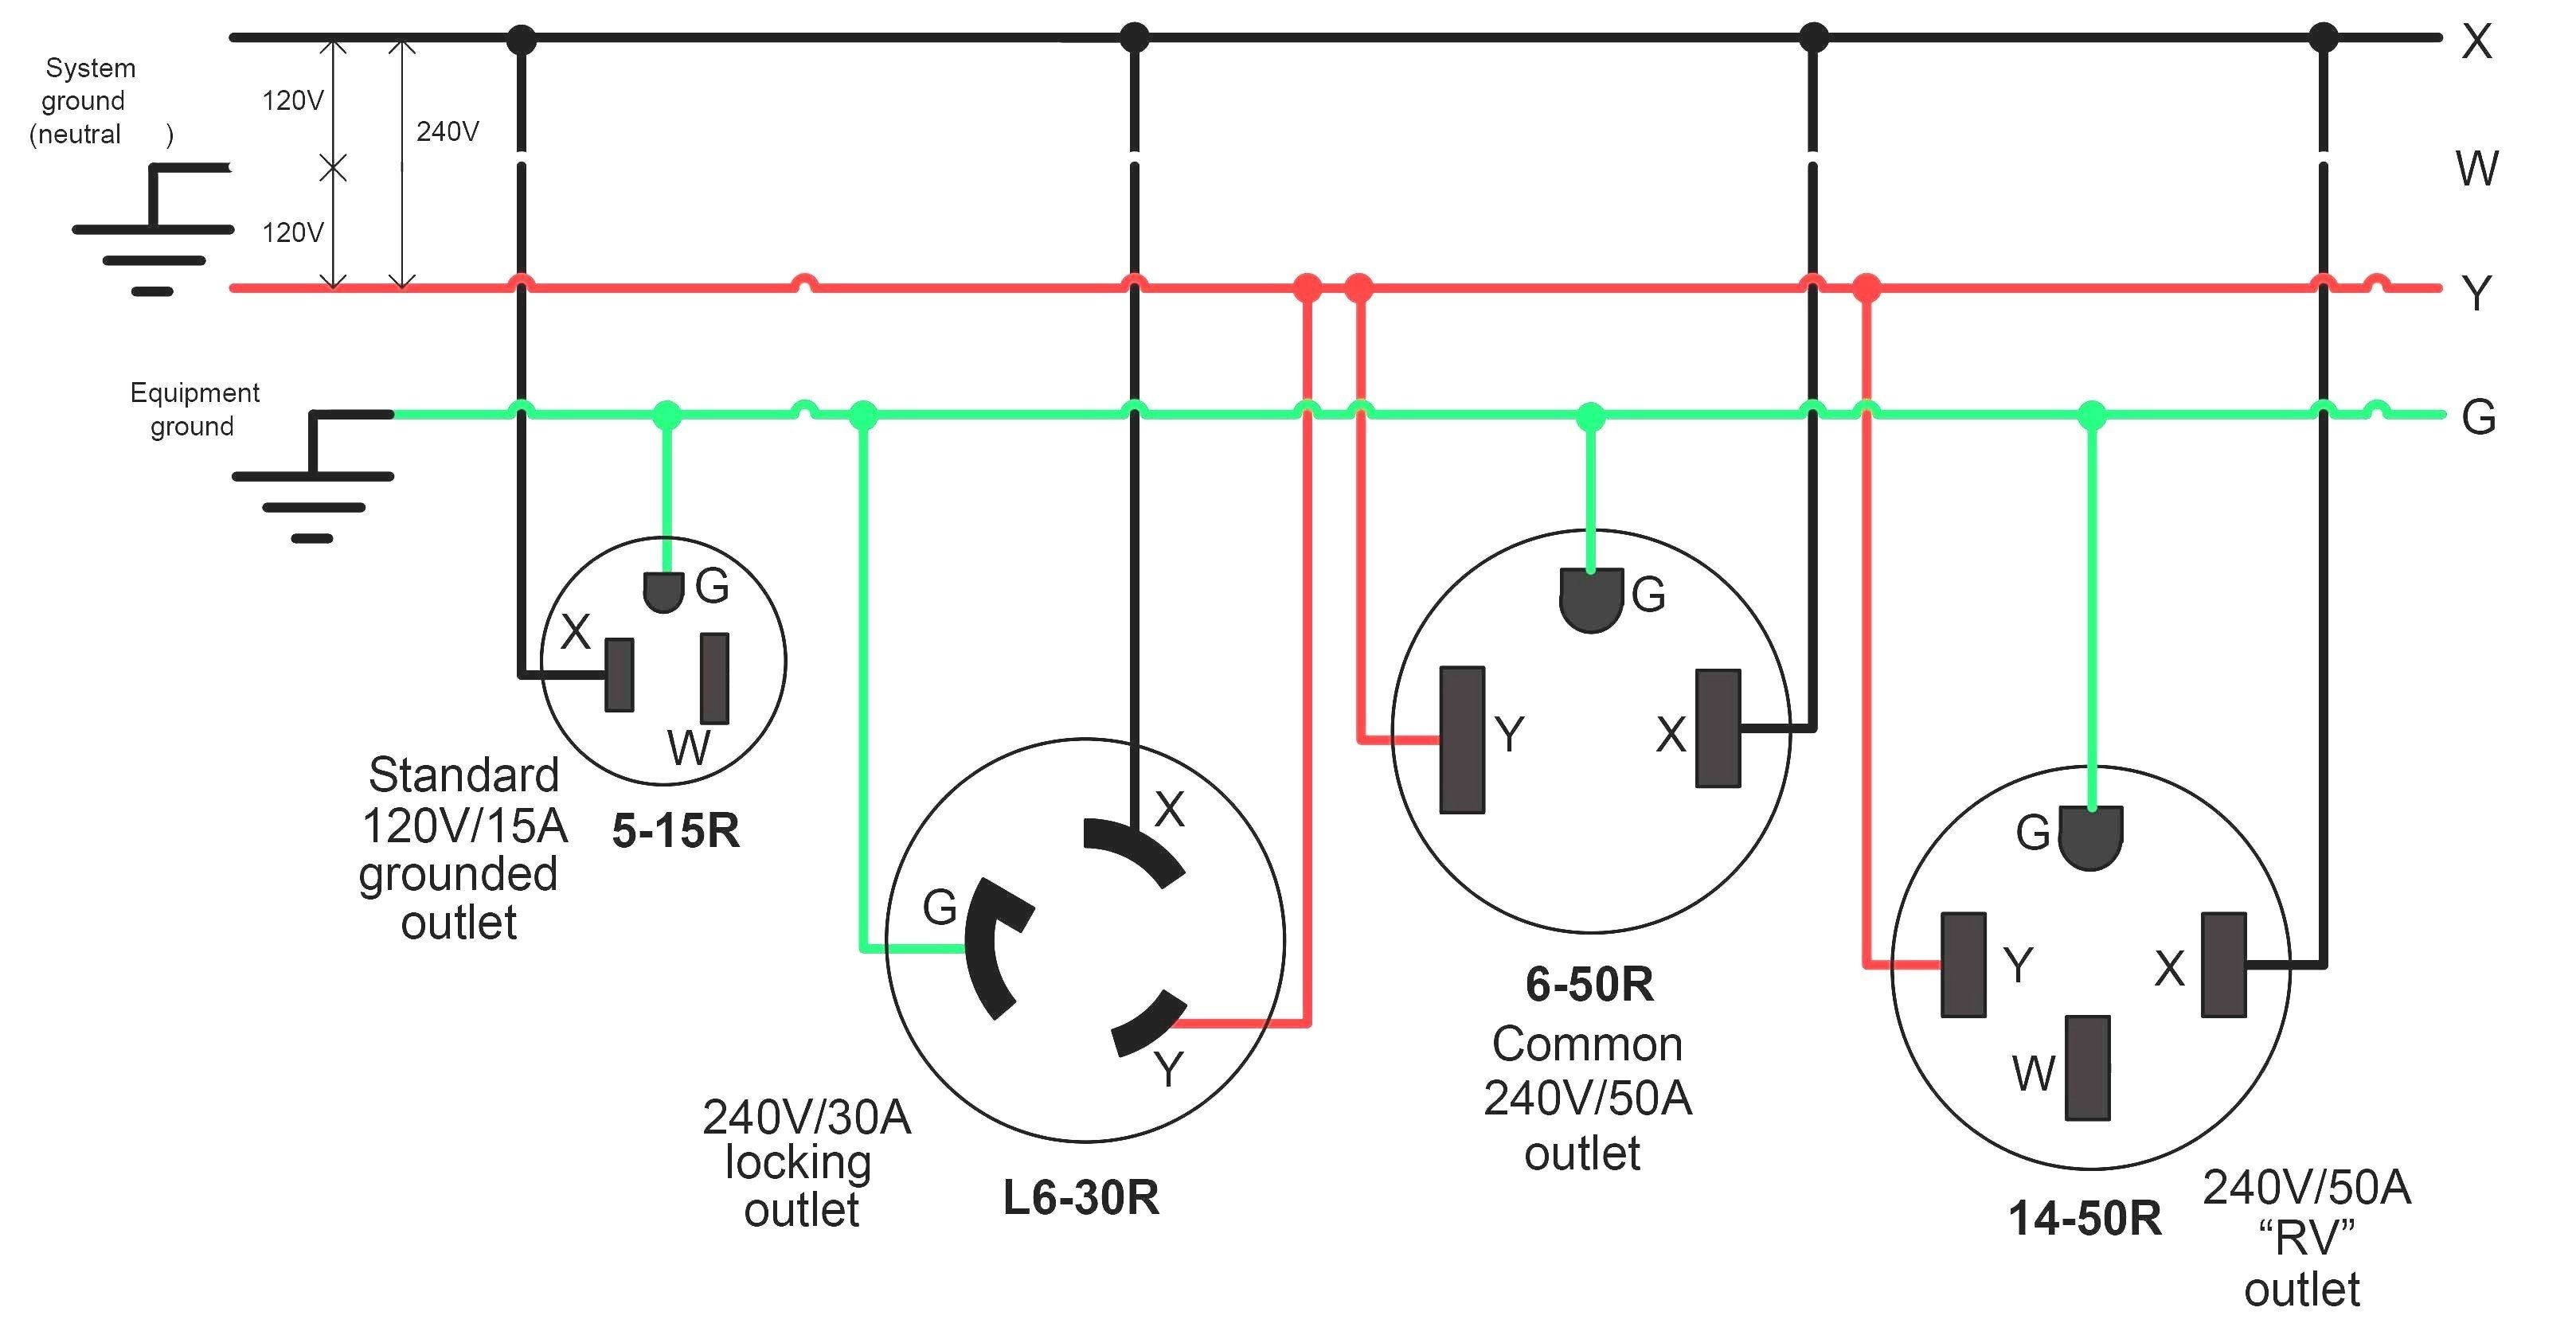 electrical wiring 240v ac wiring diagram article review electrical wiring 240v ac [ 3235 x 1672 Pixel ]